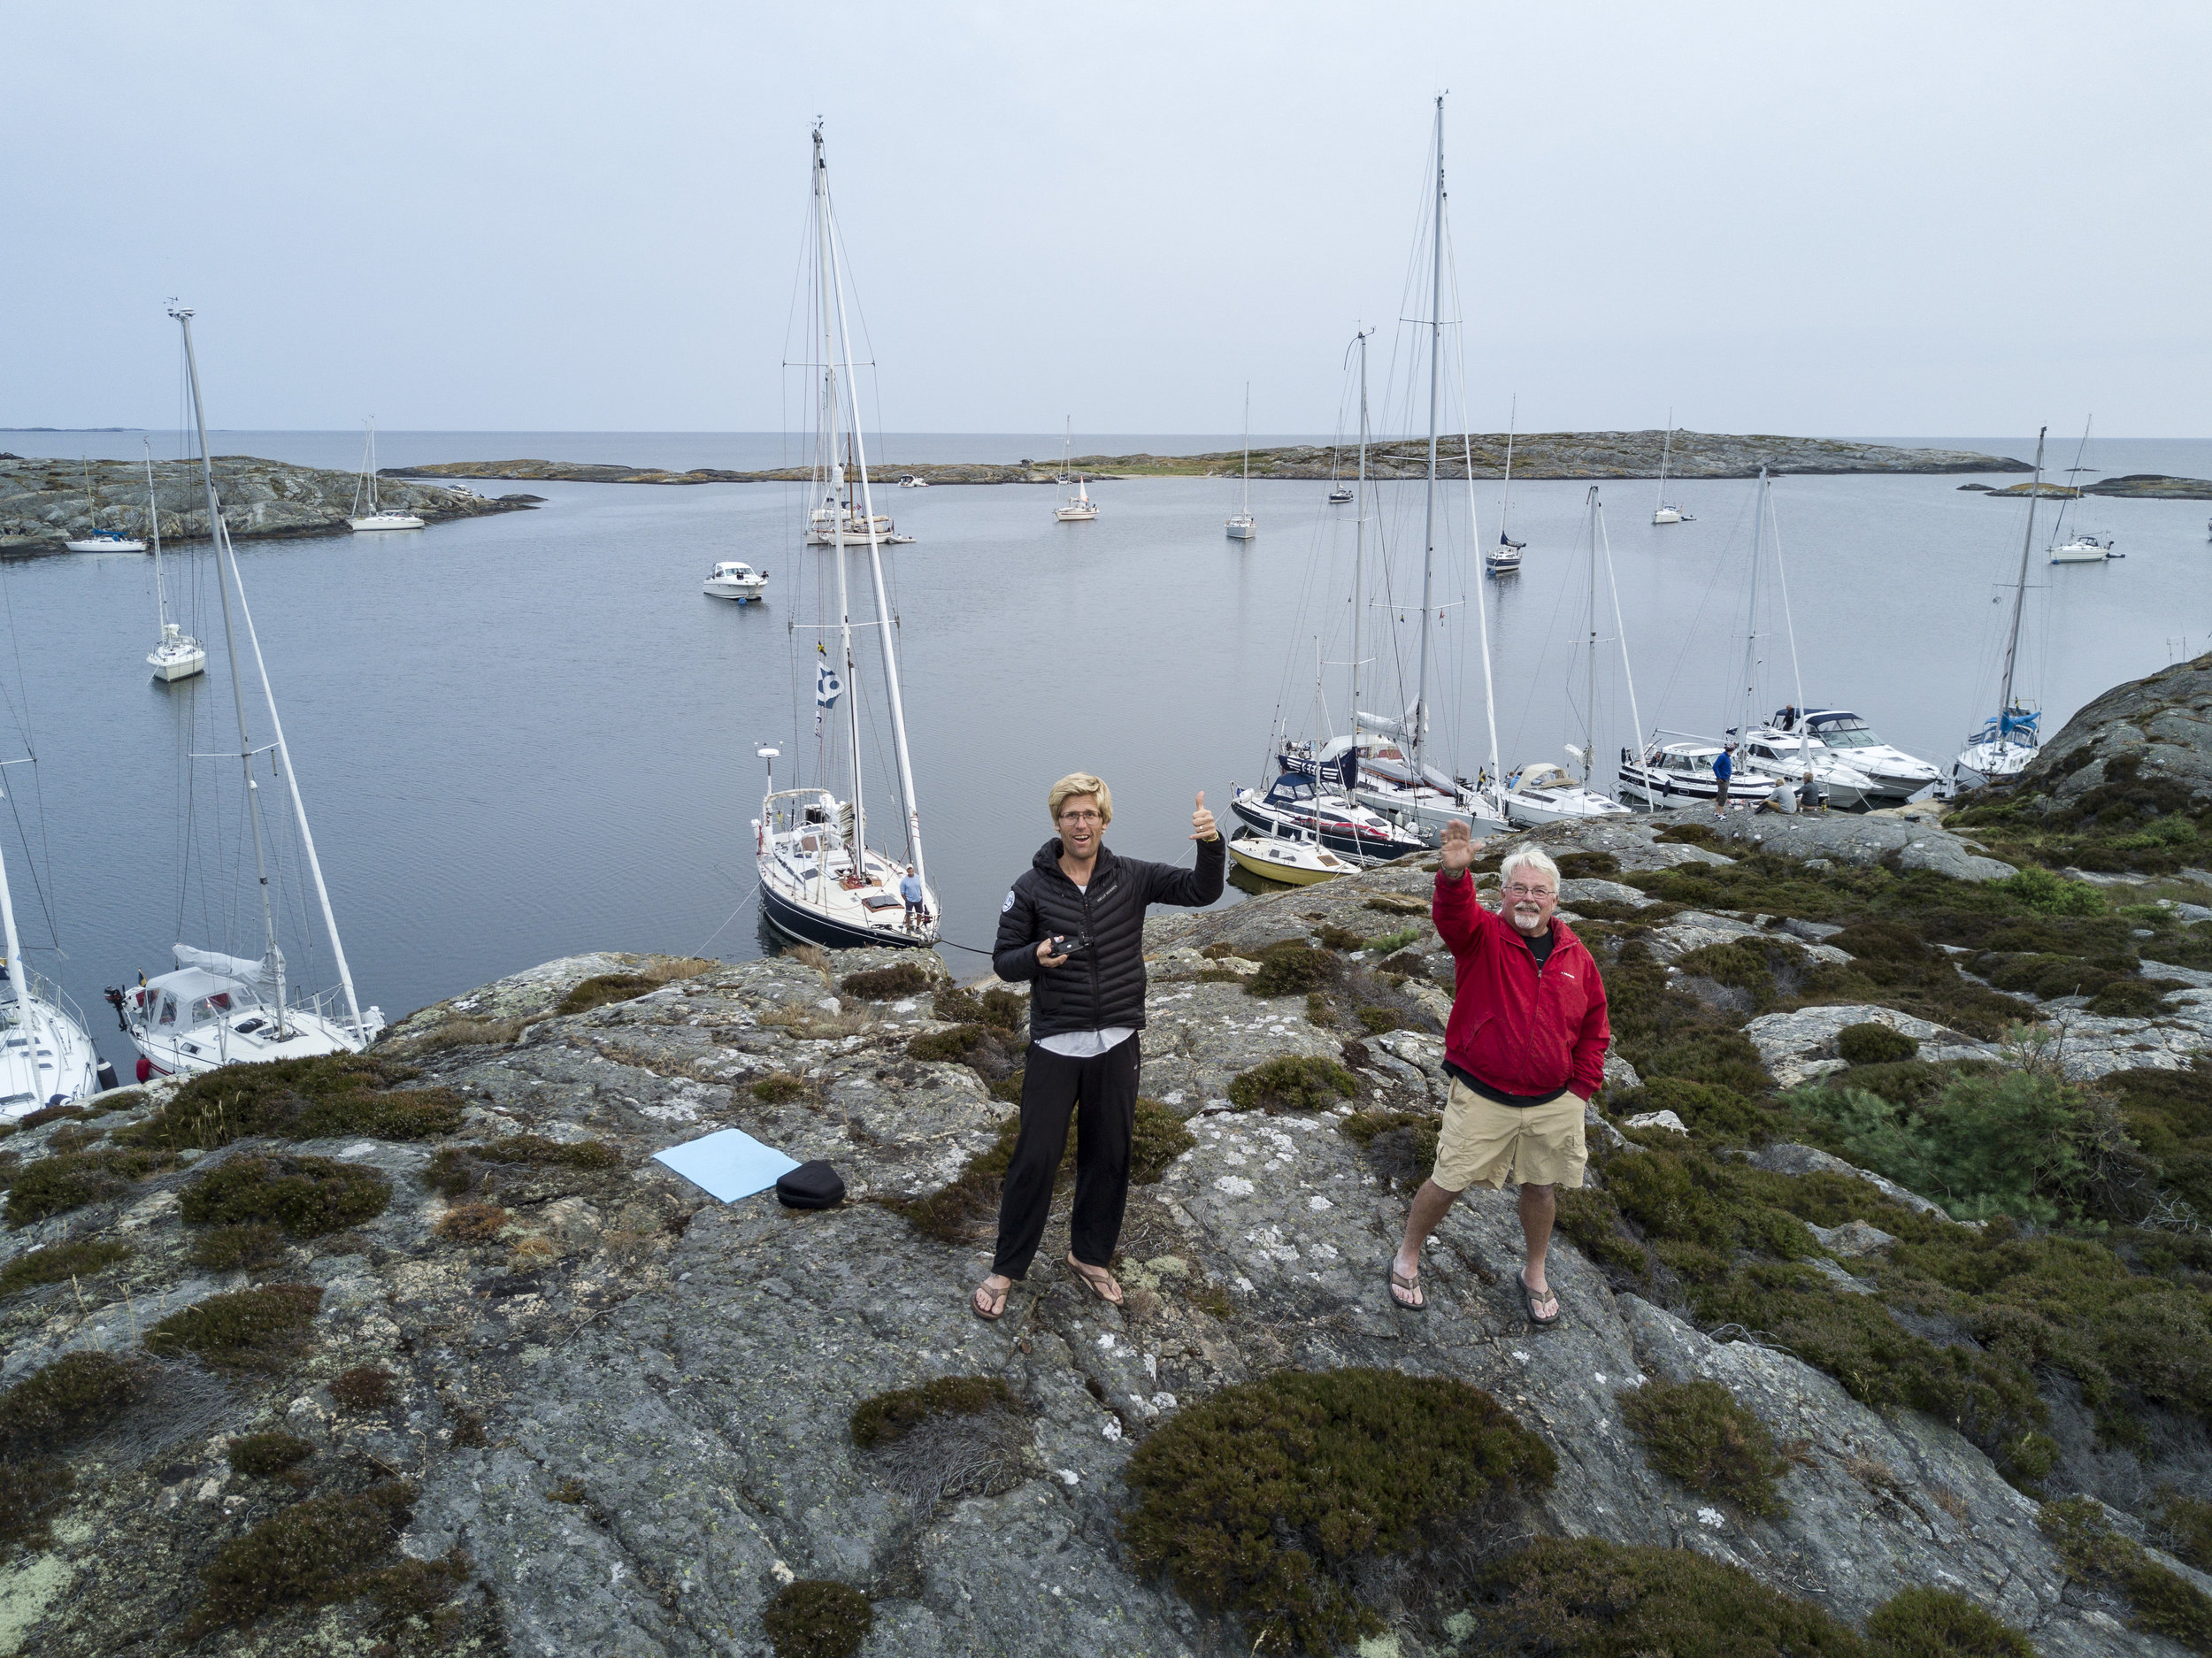 Andy & his dad Dennis flying the drone in Mollön Isbjorn in the background anchored to the cliffs.